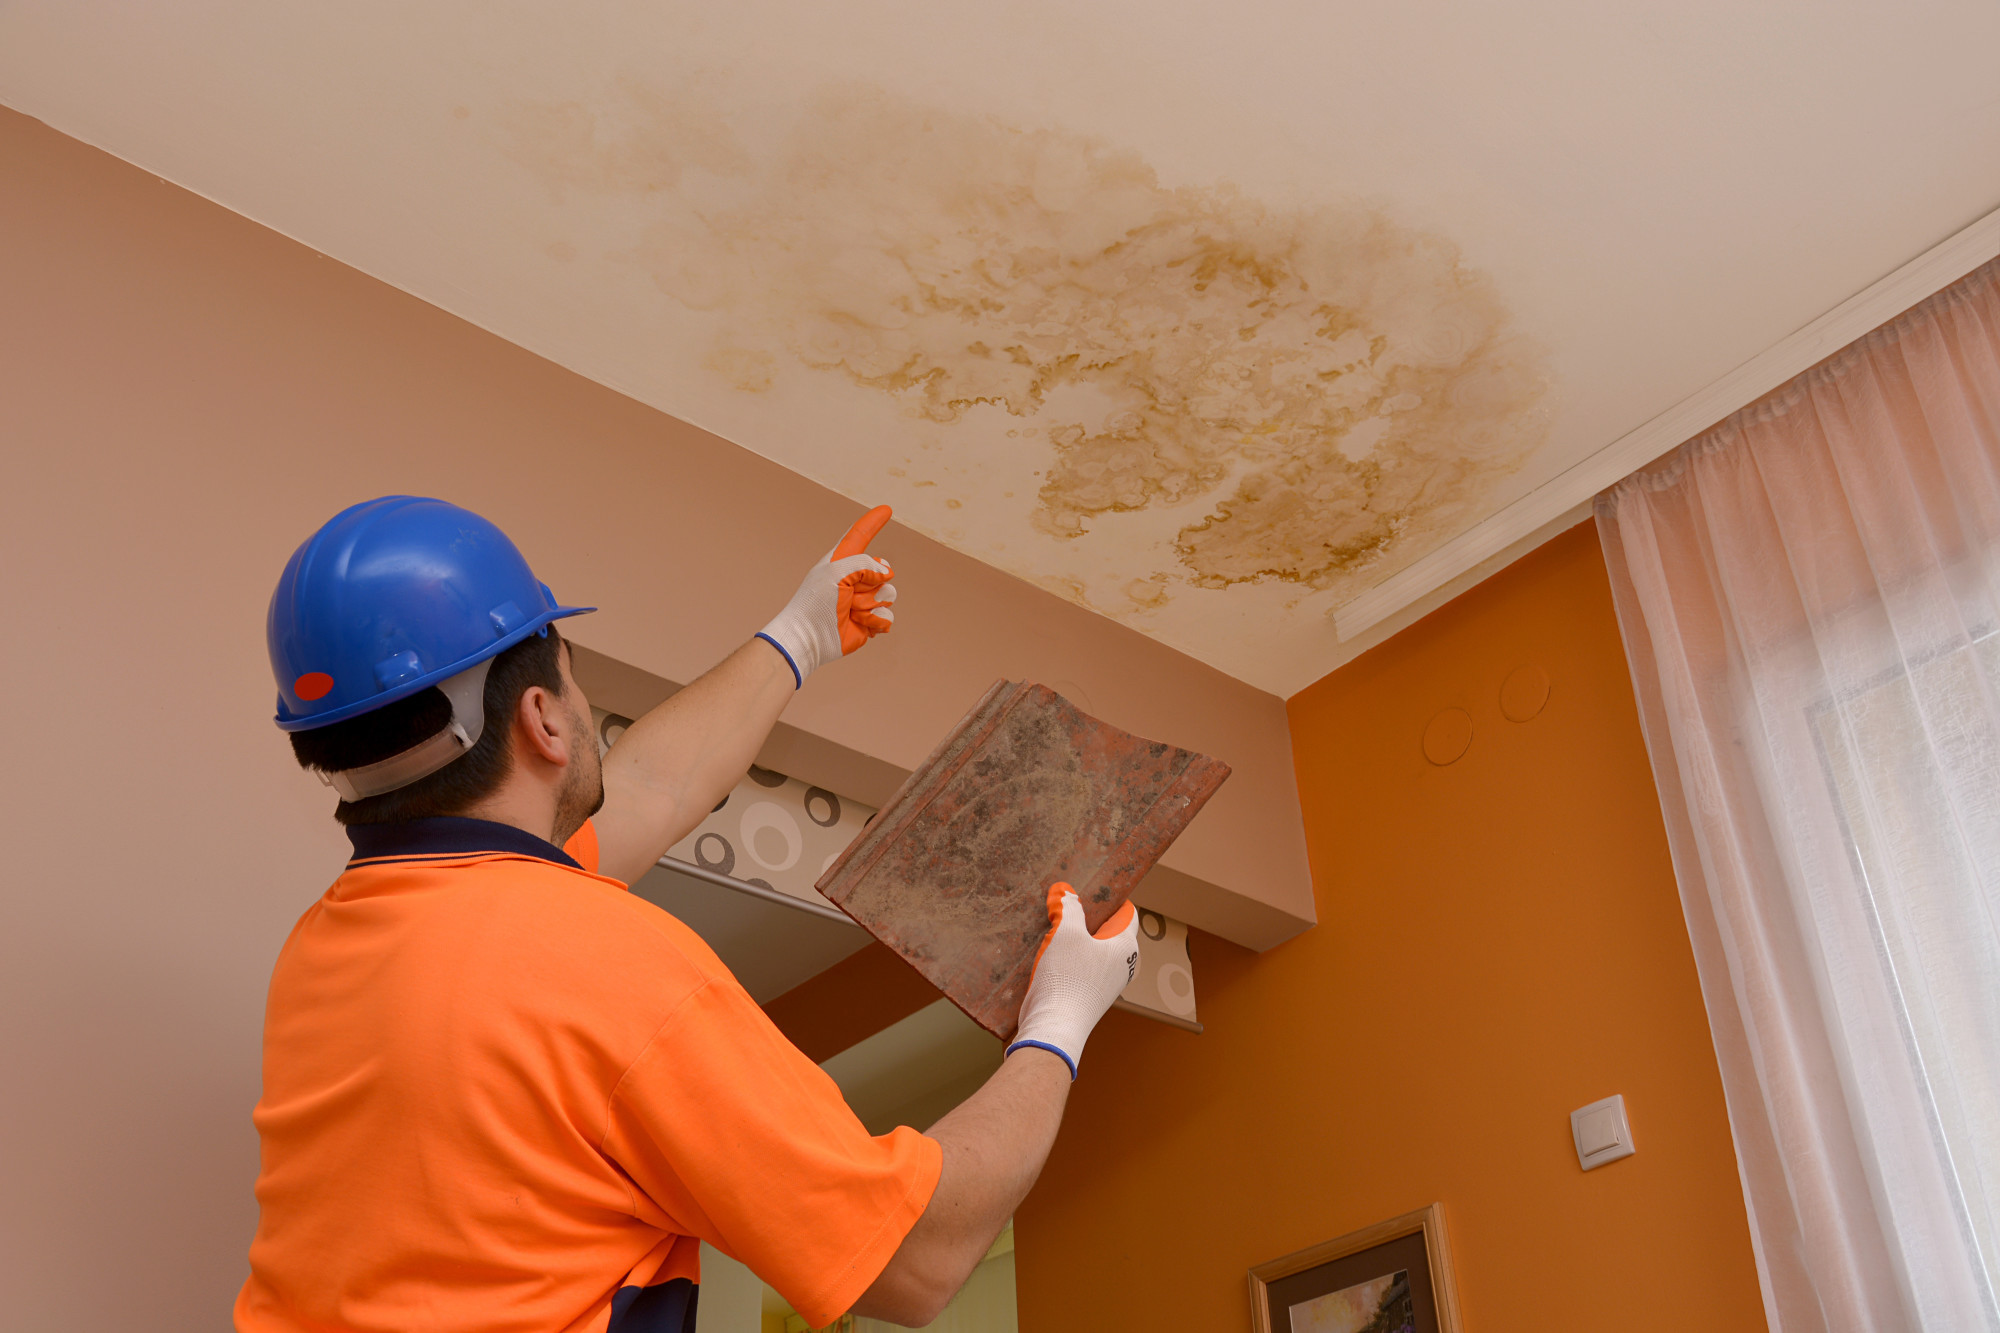 thumbnail for How To Know When To Call The Experts On Water Damage Repair